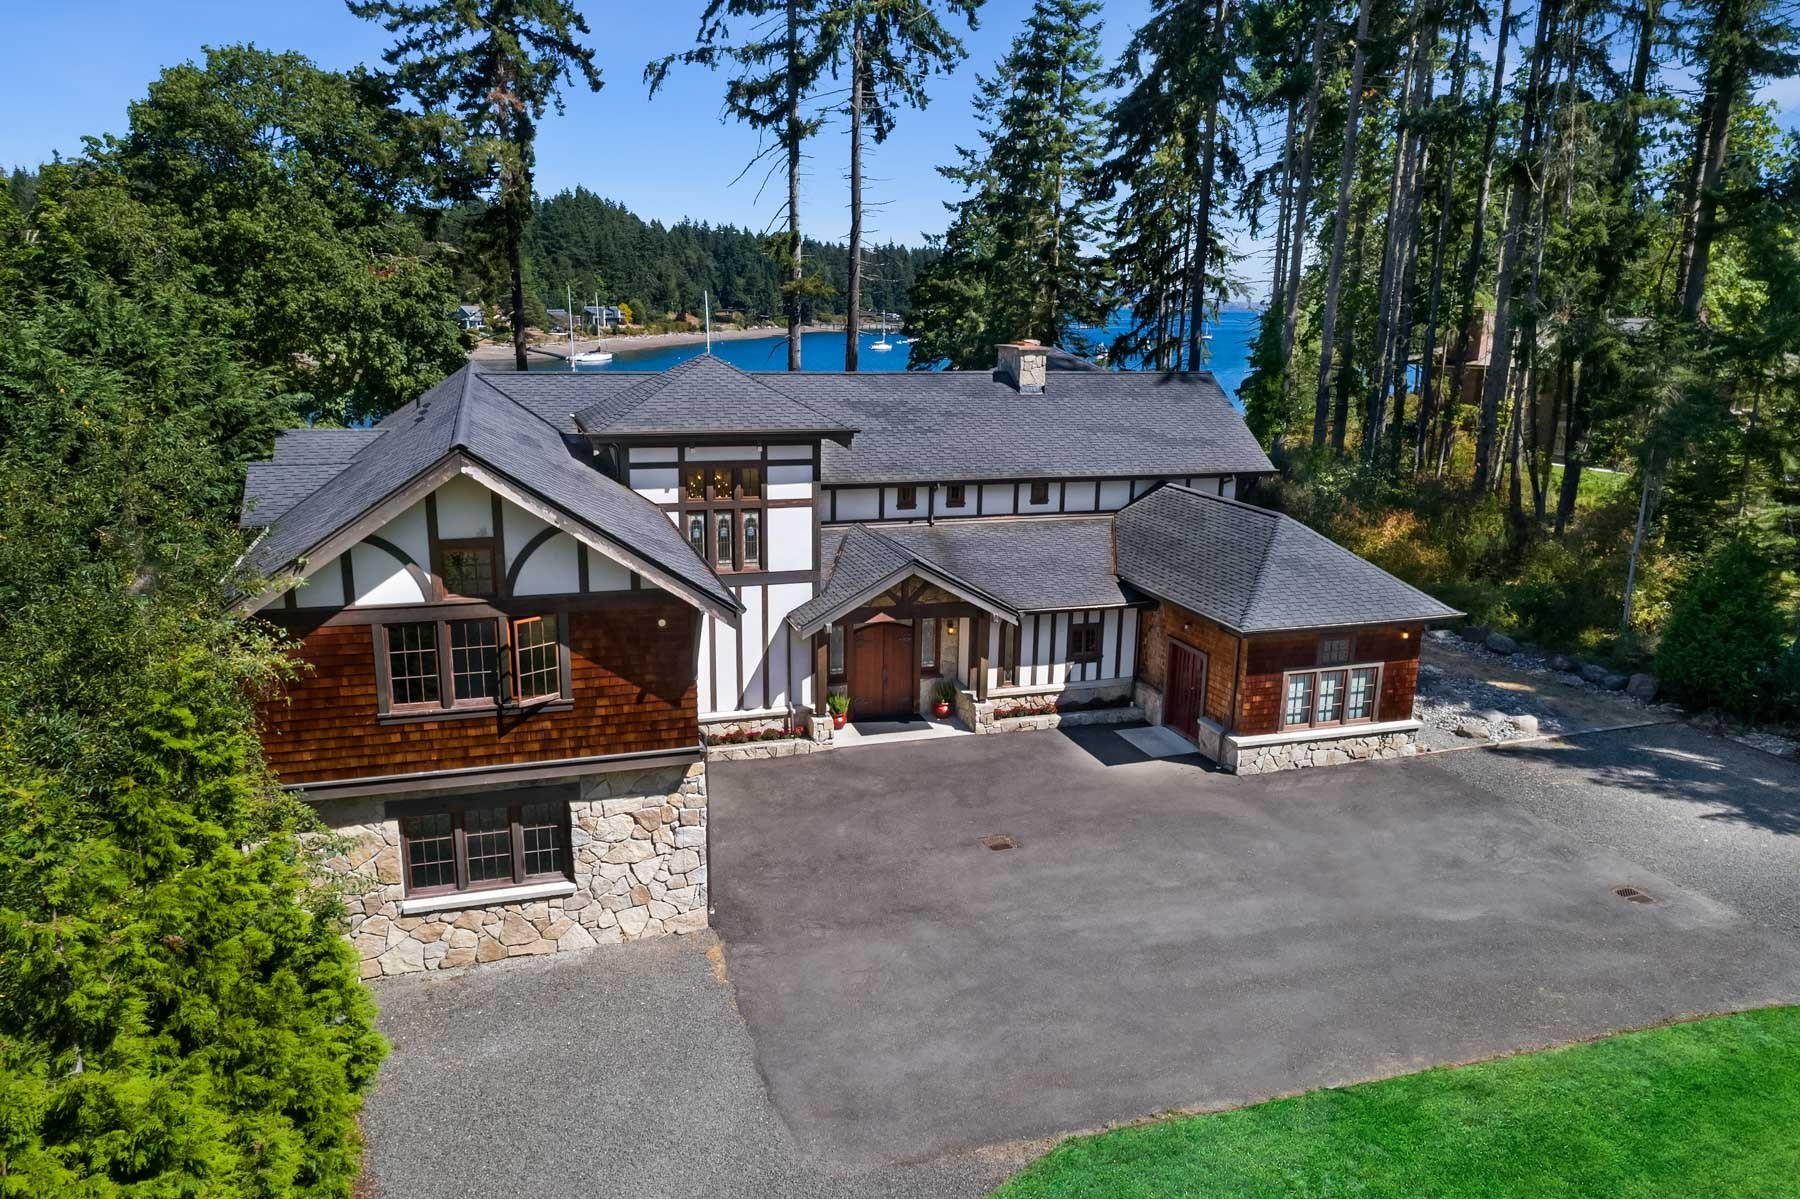 Additional photo for property listing at The Lodge at Blakley Harbor 10254 NE Country Club Rd Bainbridge Island, Вашингтон 98110 Соединенные Штаты